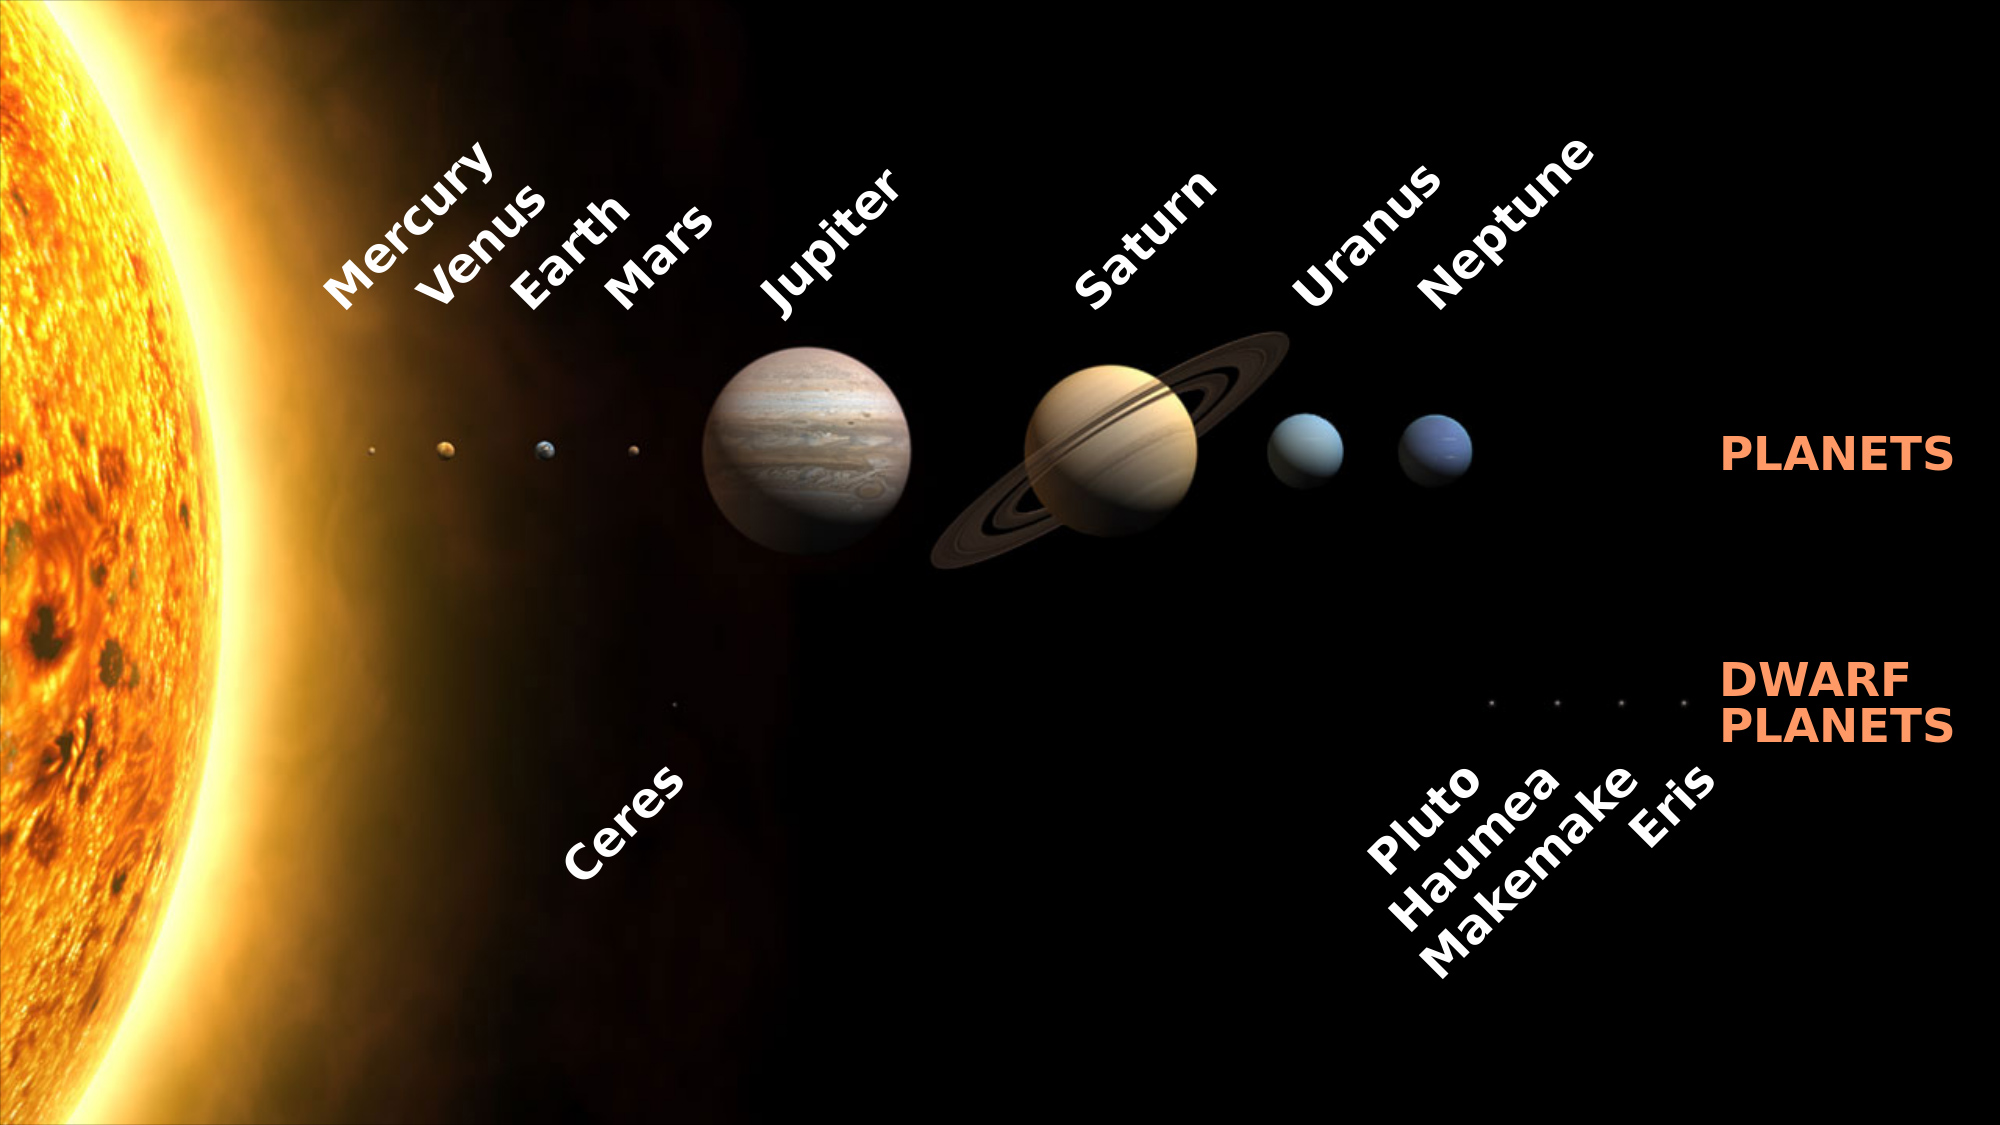 hight resolution of dwarf planets classification most notable dwarf planets videos dwarf planet diagram